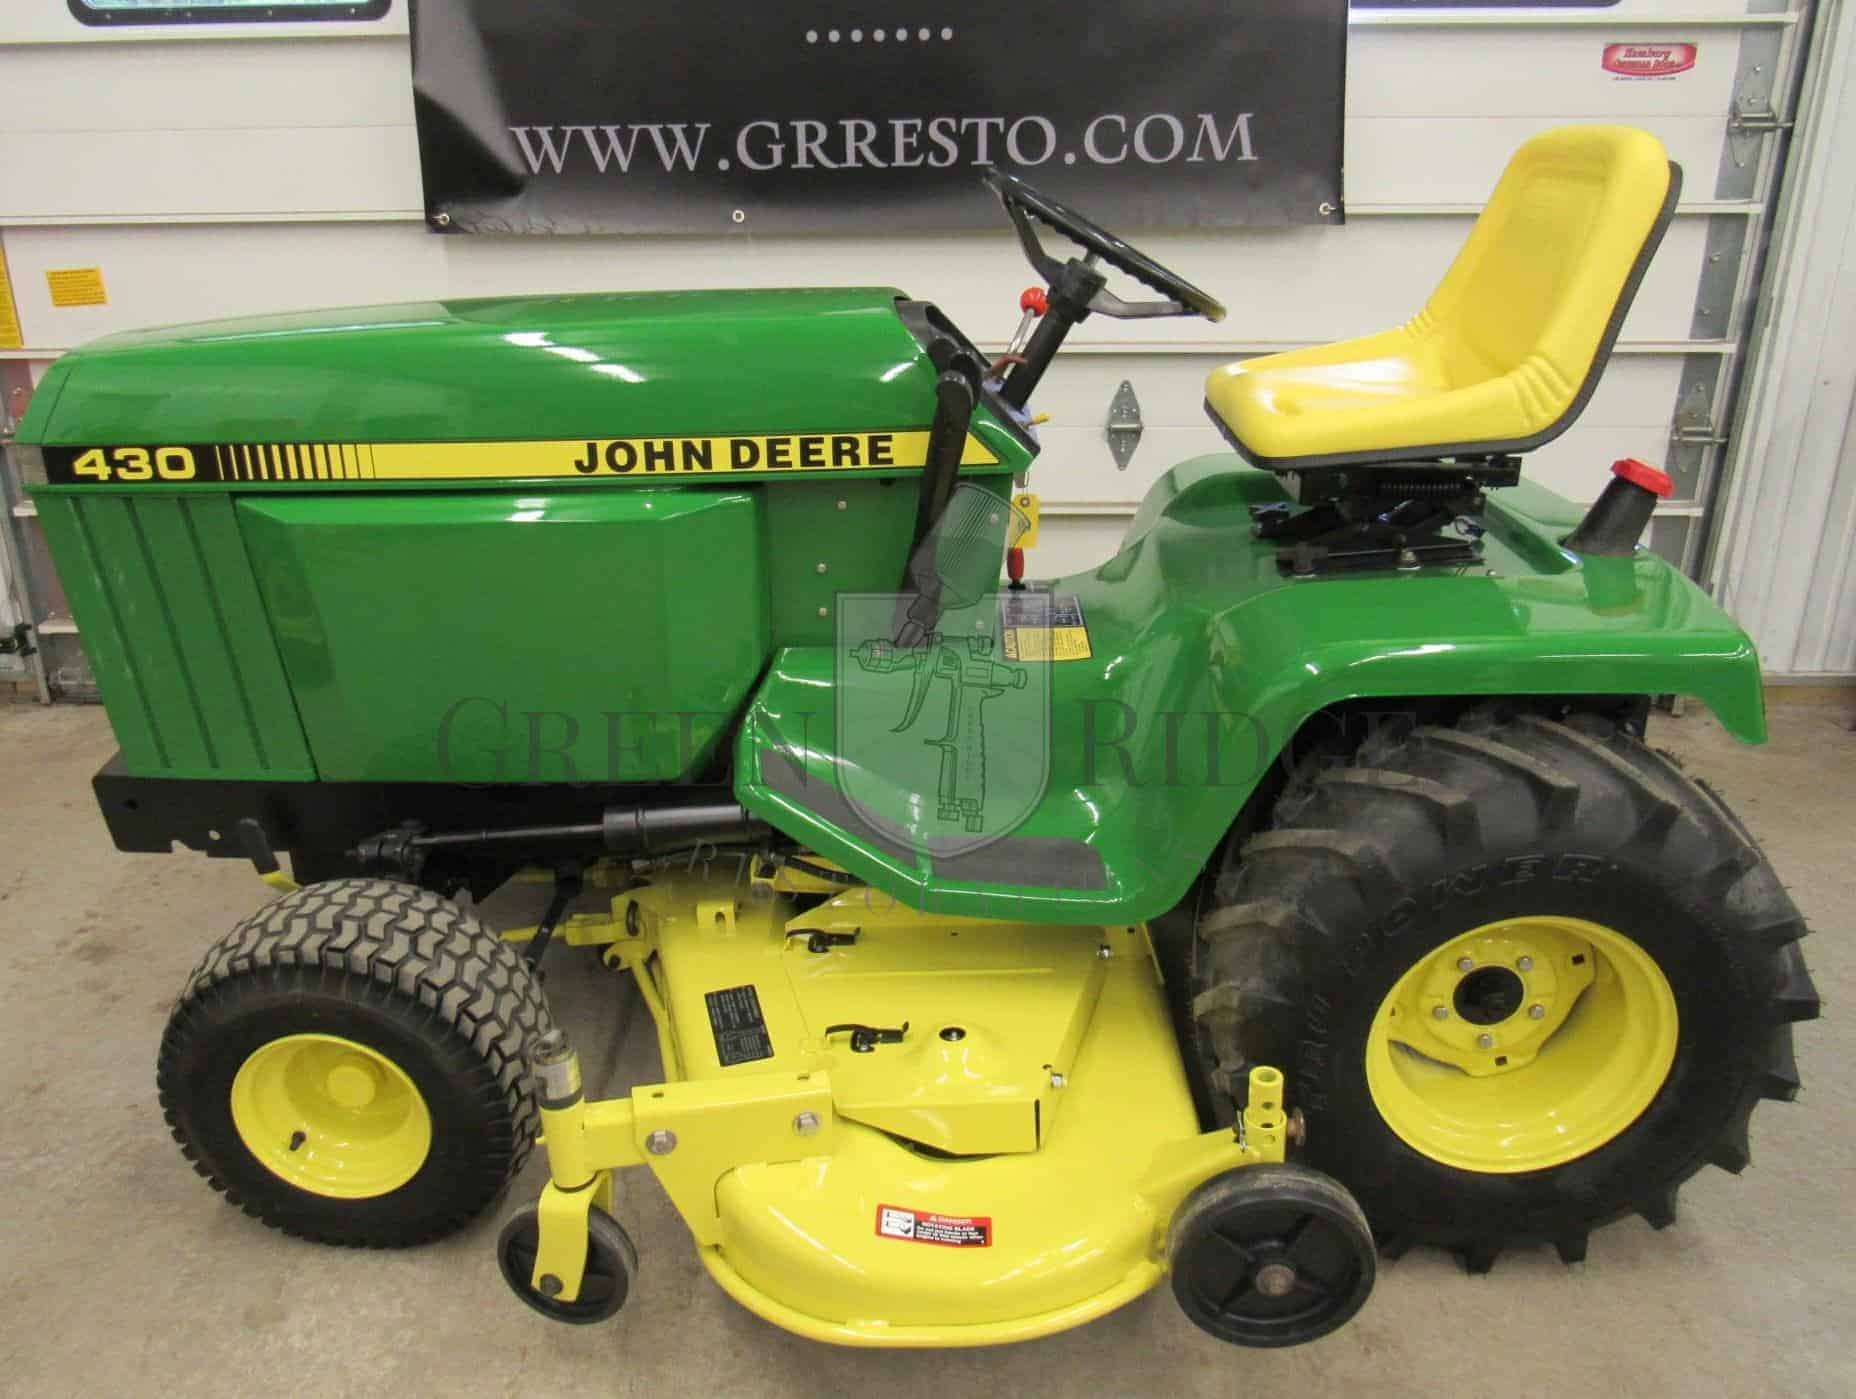 Why Should You Choose A John Deere Diesel Lawn Tractor